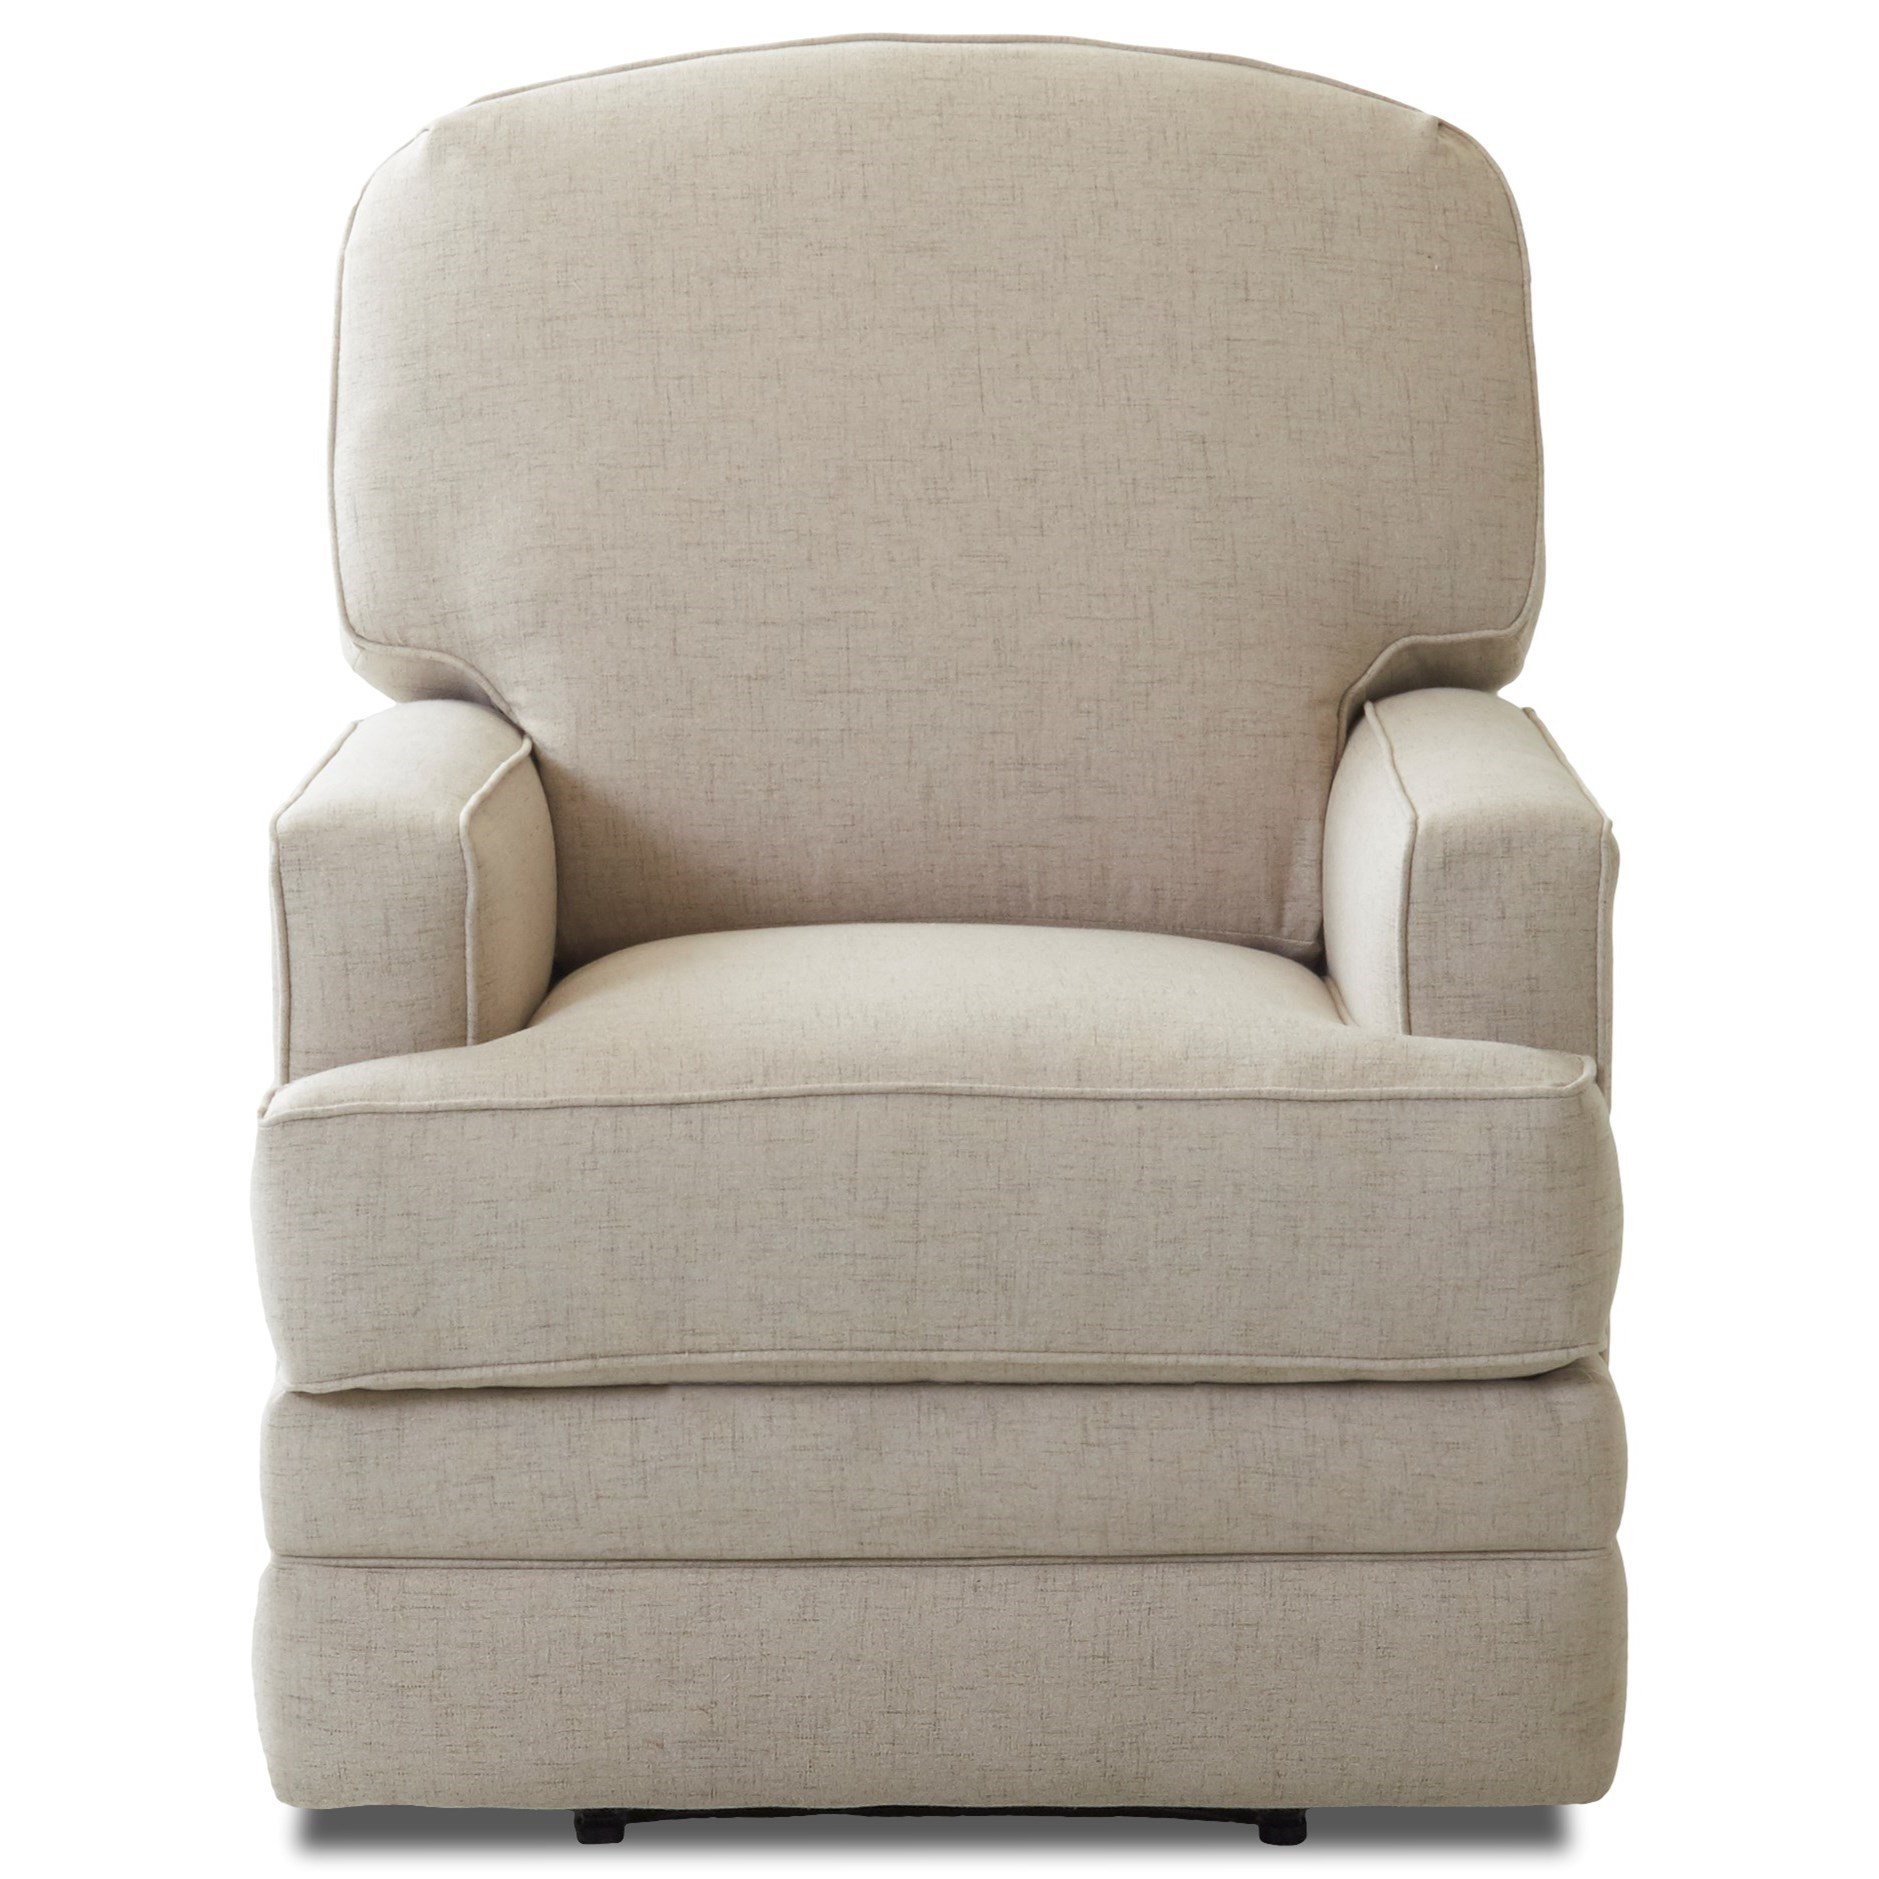 Chapman Casual Power Reclining Chair by Klaussner at Northeast Factory Direct